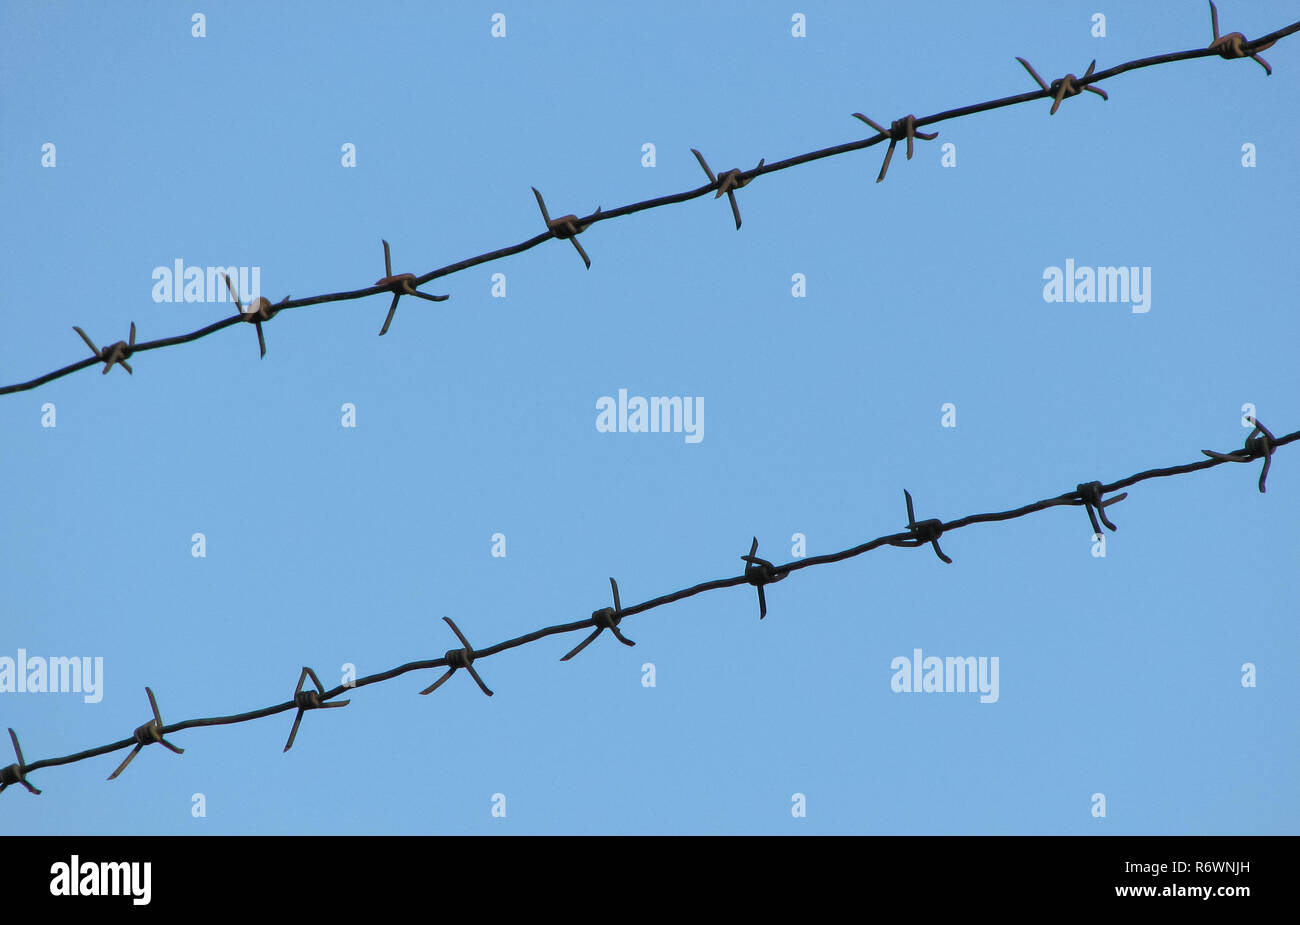 Old rusty barbed wire on a blue sky Stock Photo